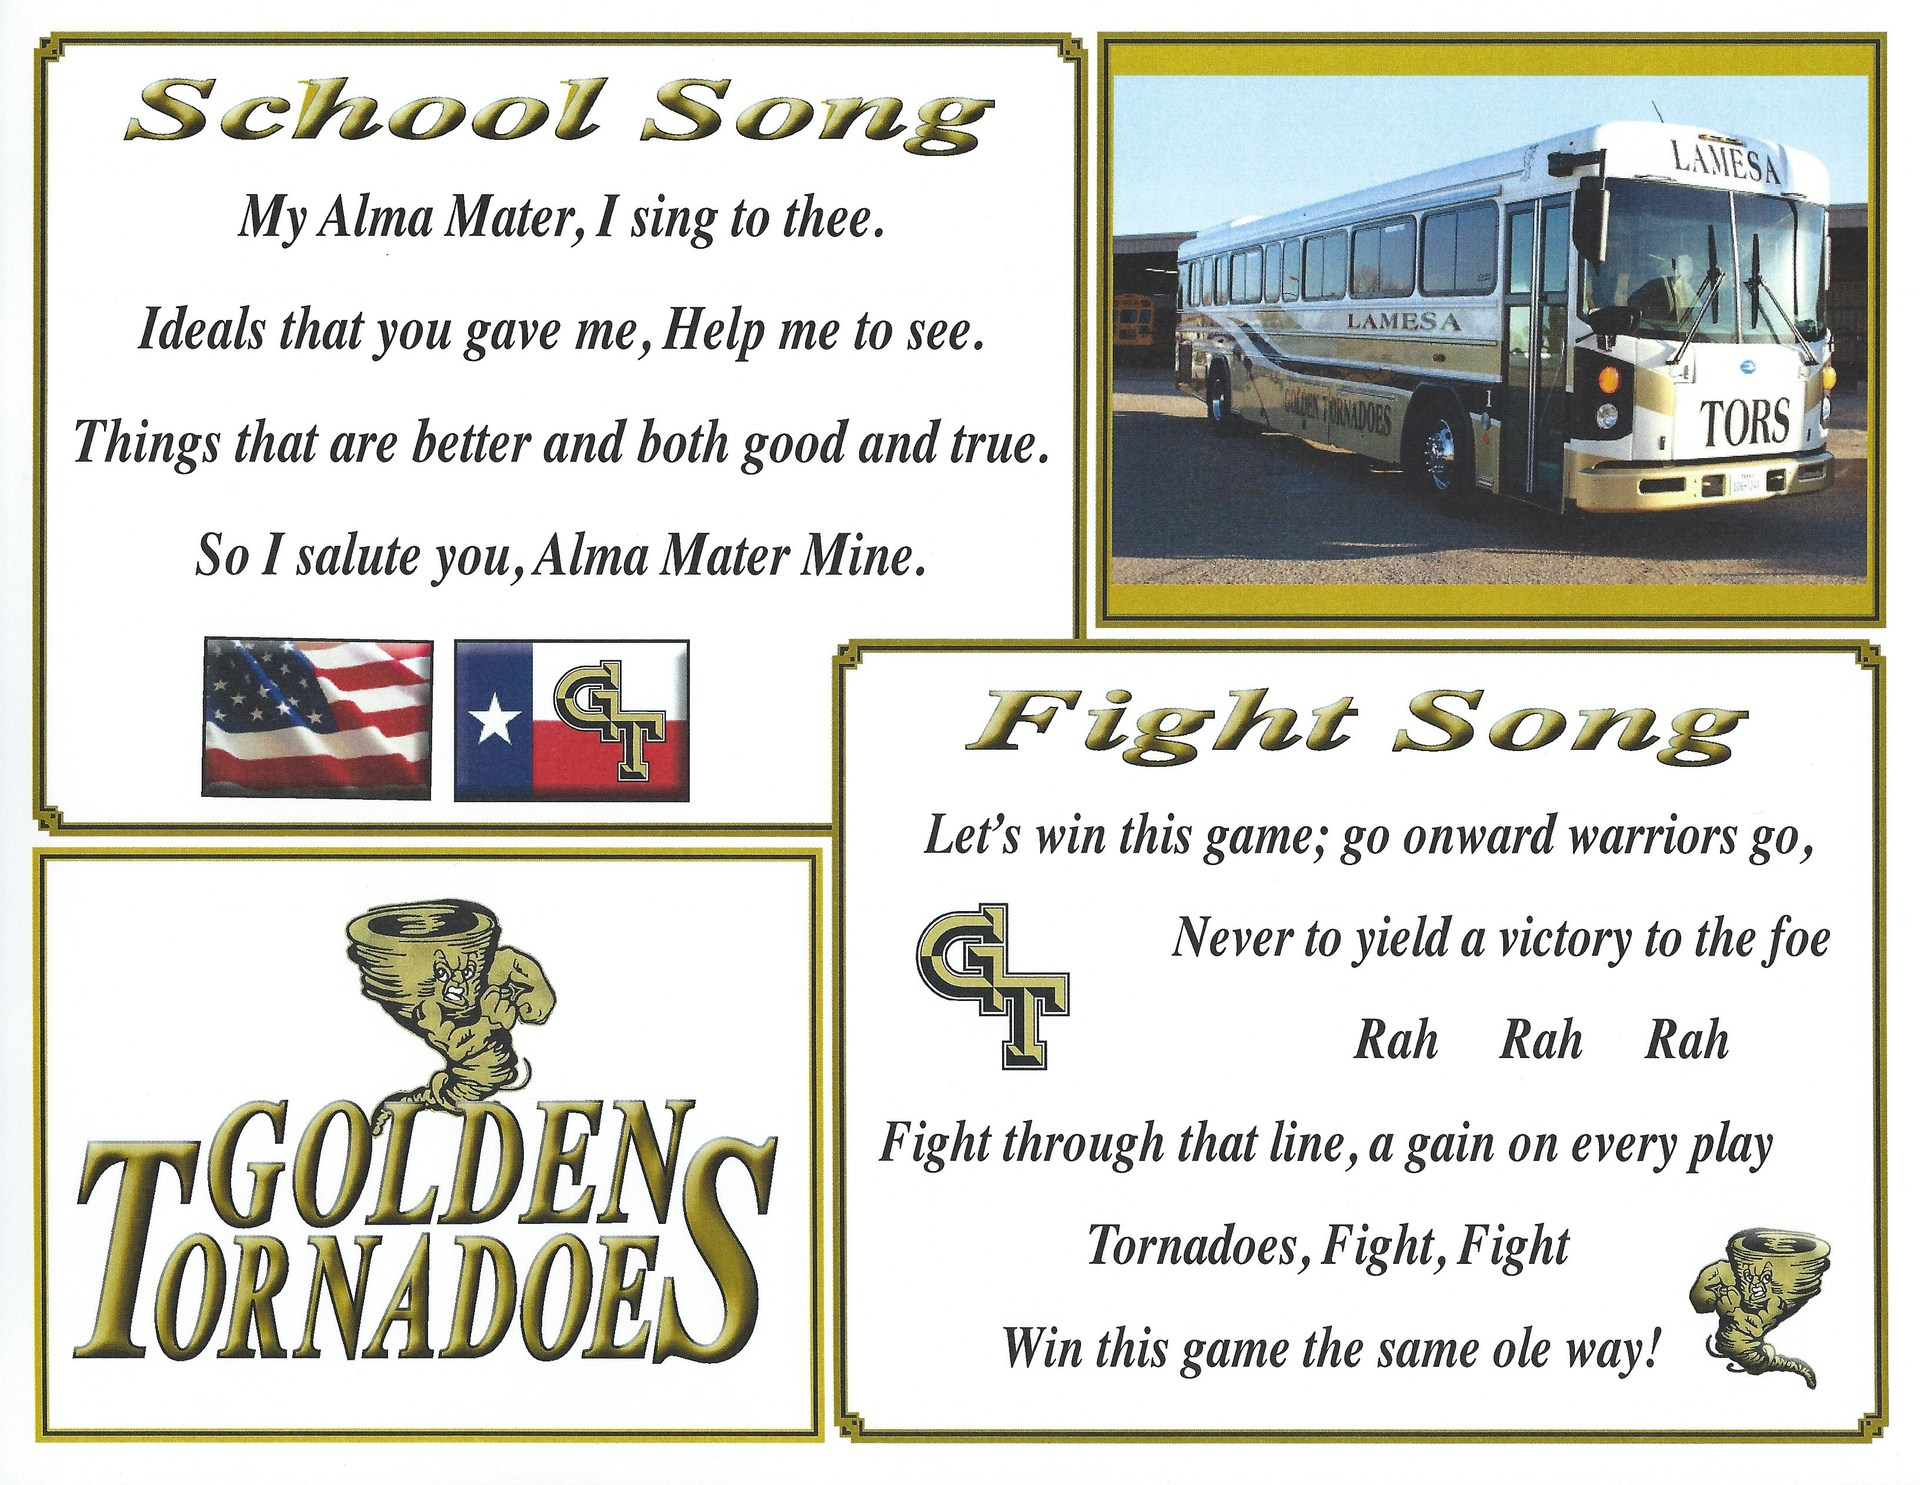 SCHOOL SONG AND FIGHT SONG